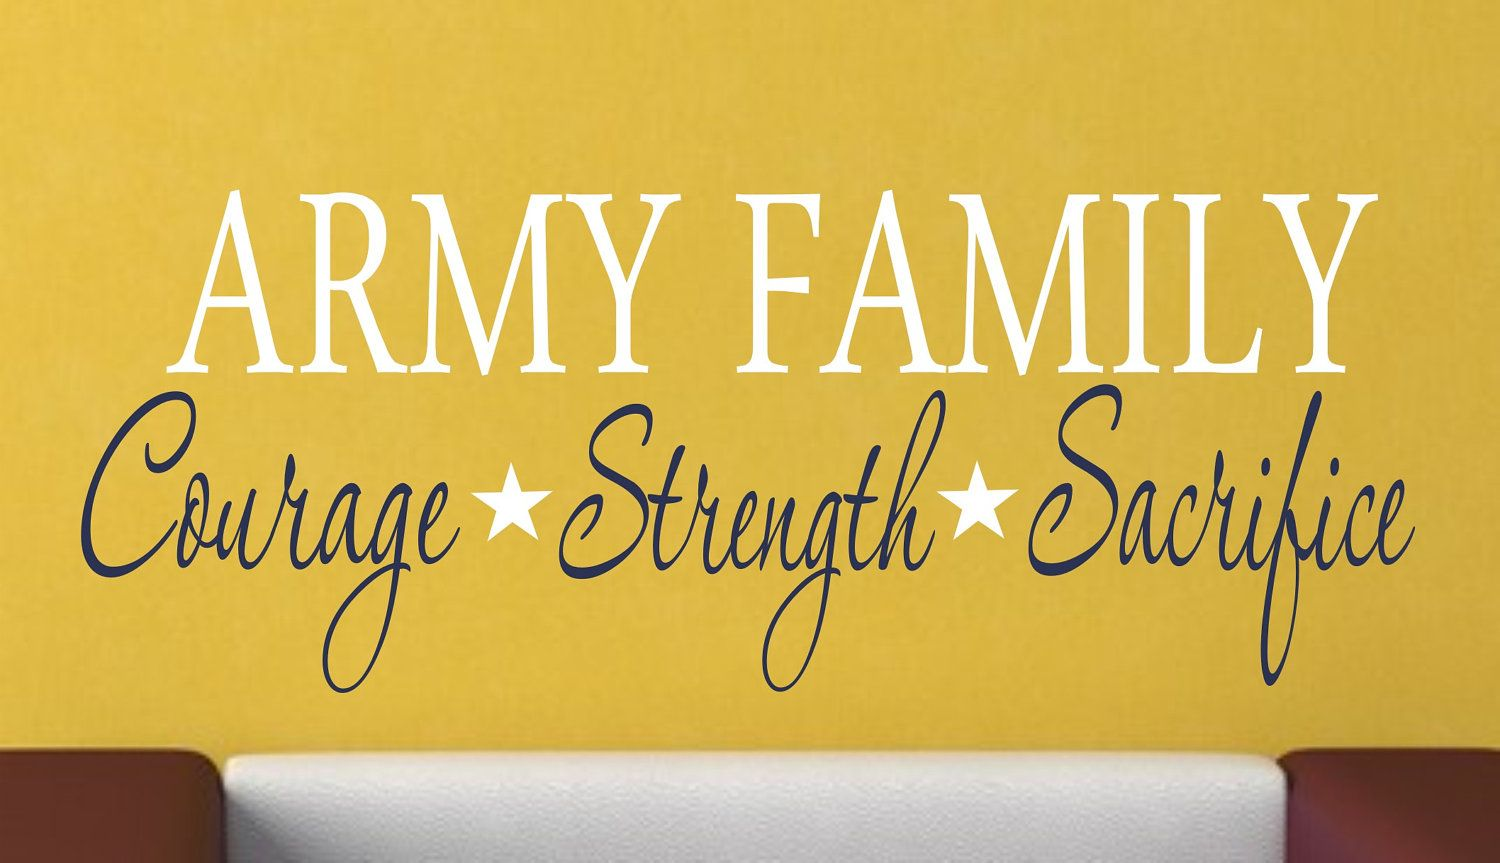 Military Family Vinyl Wall Decal - Military Decor - Vinyl Wall Art ...